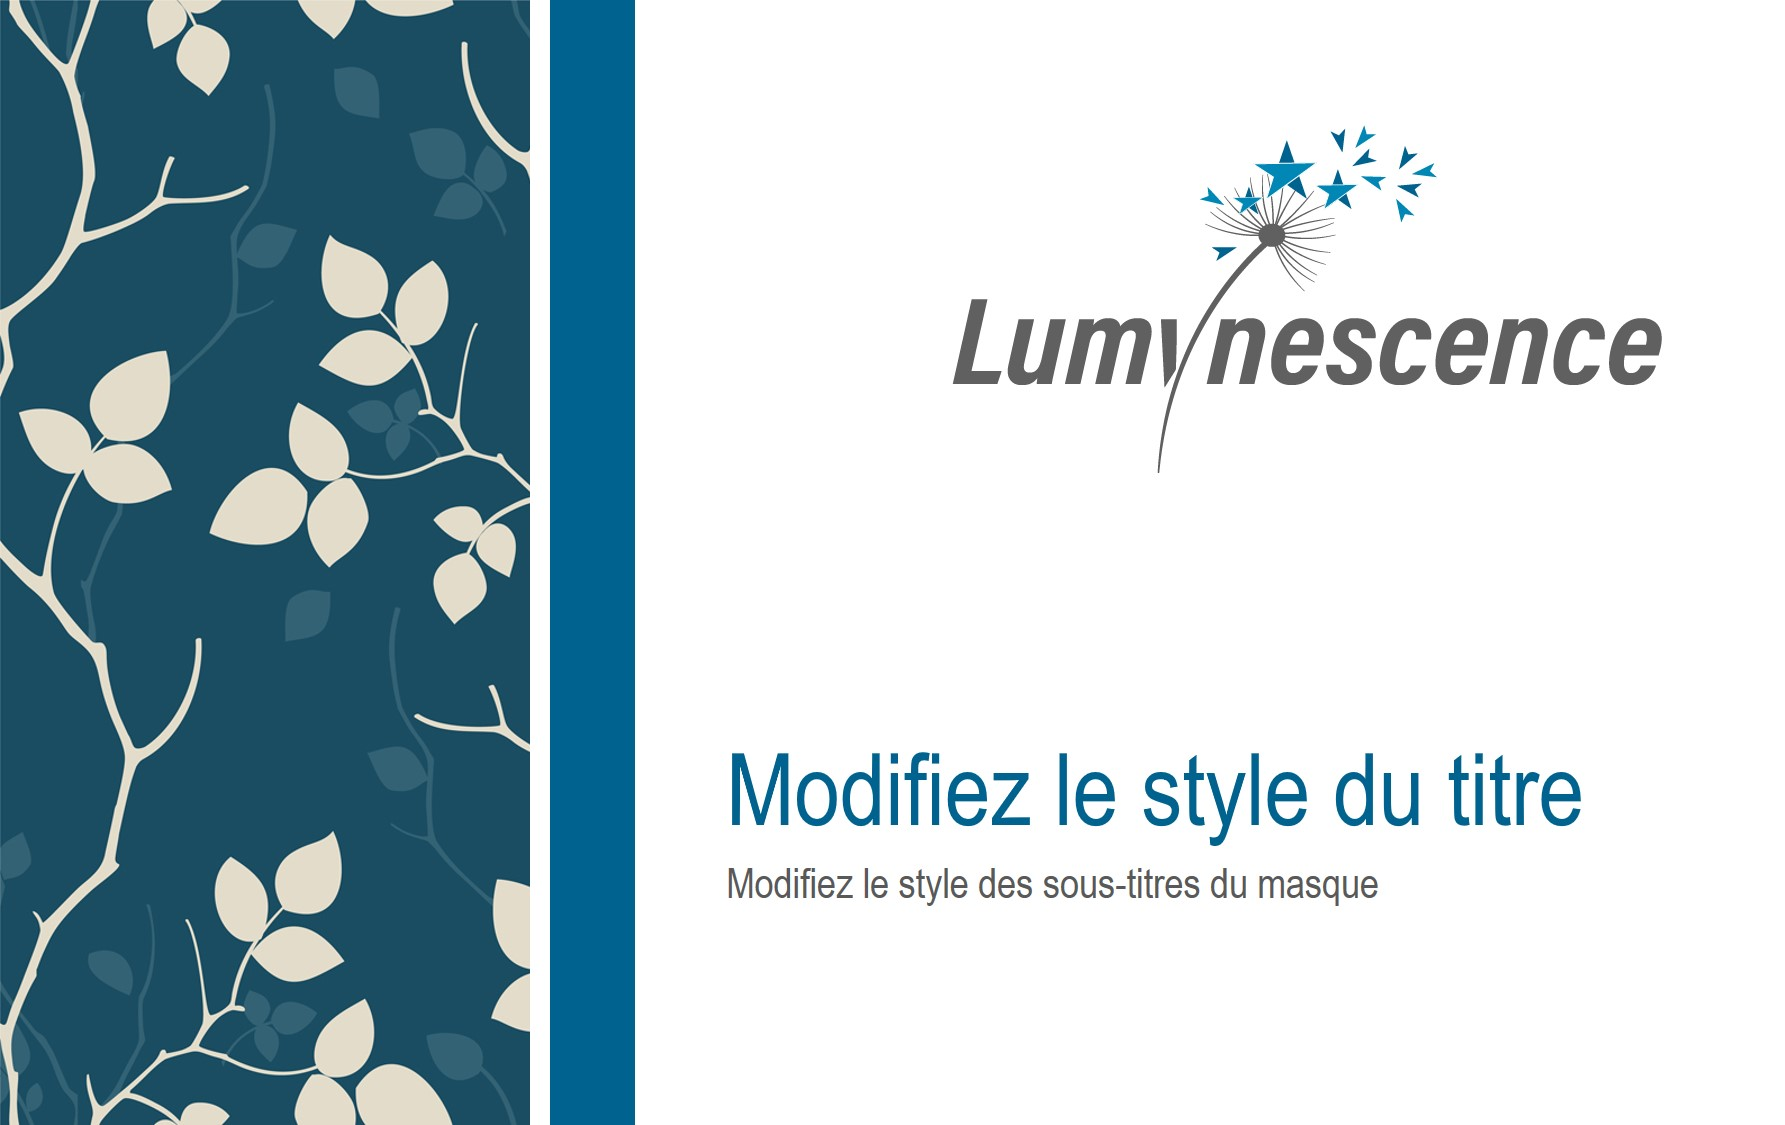 Masque Powerpoint Lumynescence